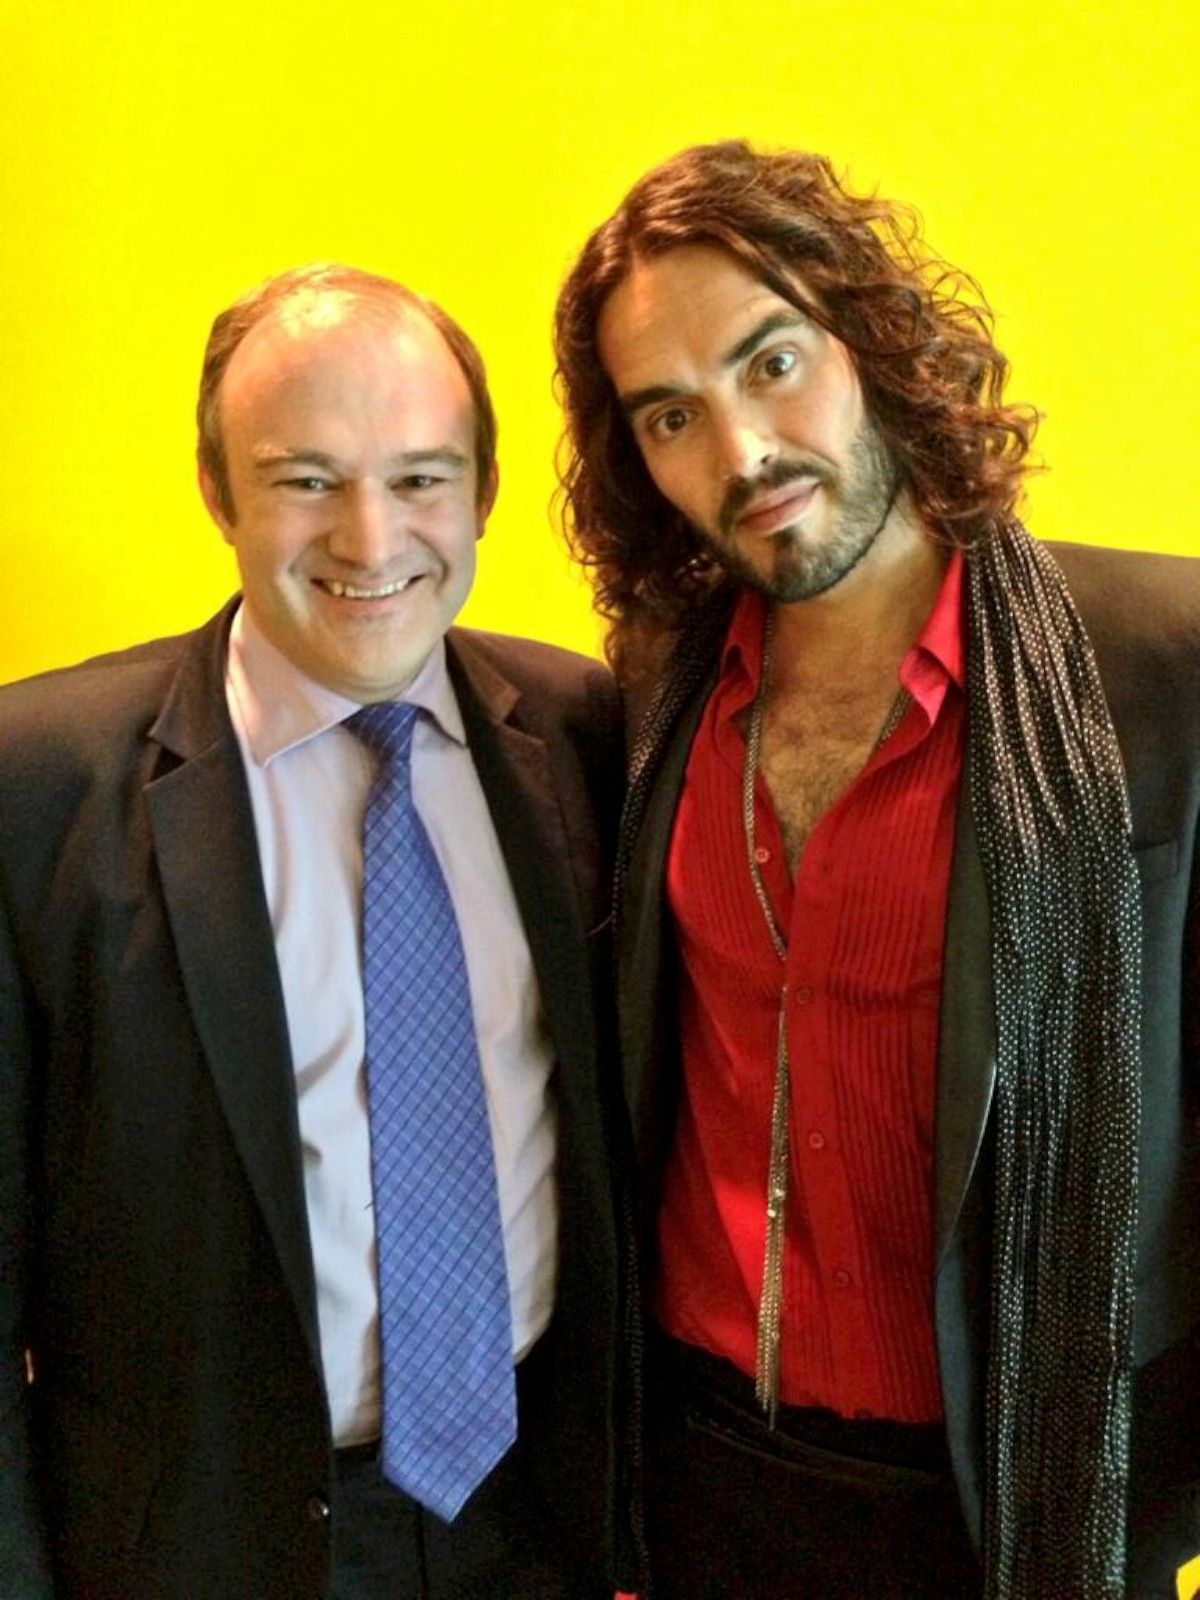 Edward Davey tweeted this picture of himself with comedian Russell Brand